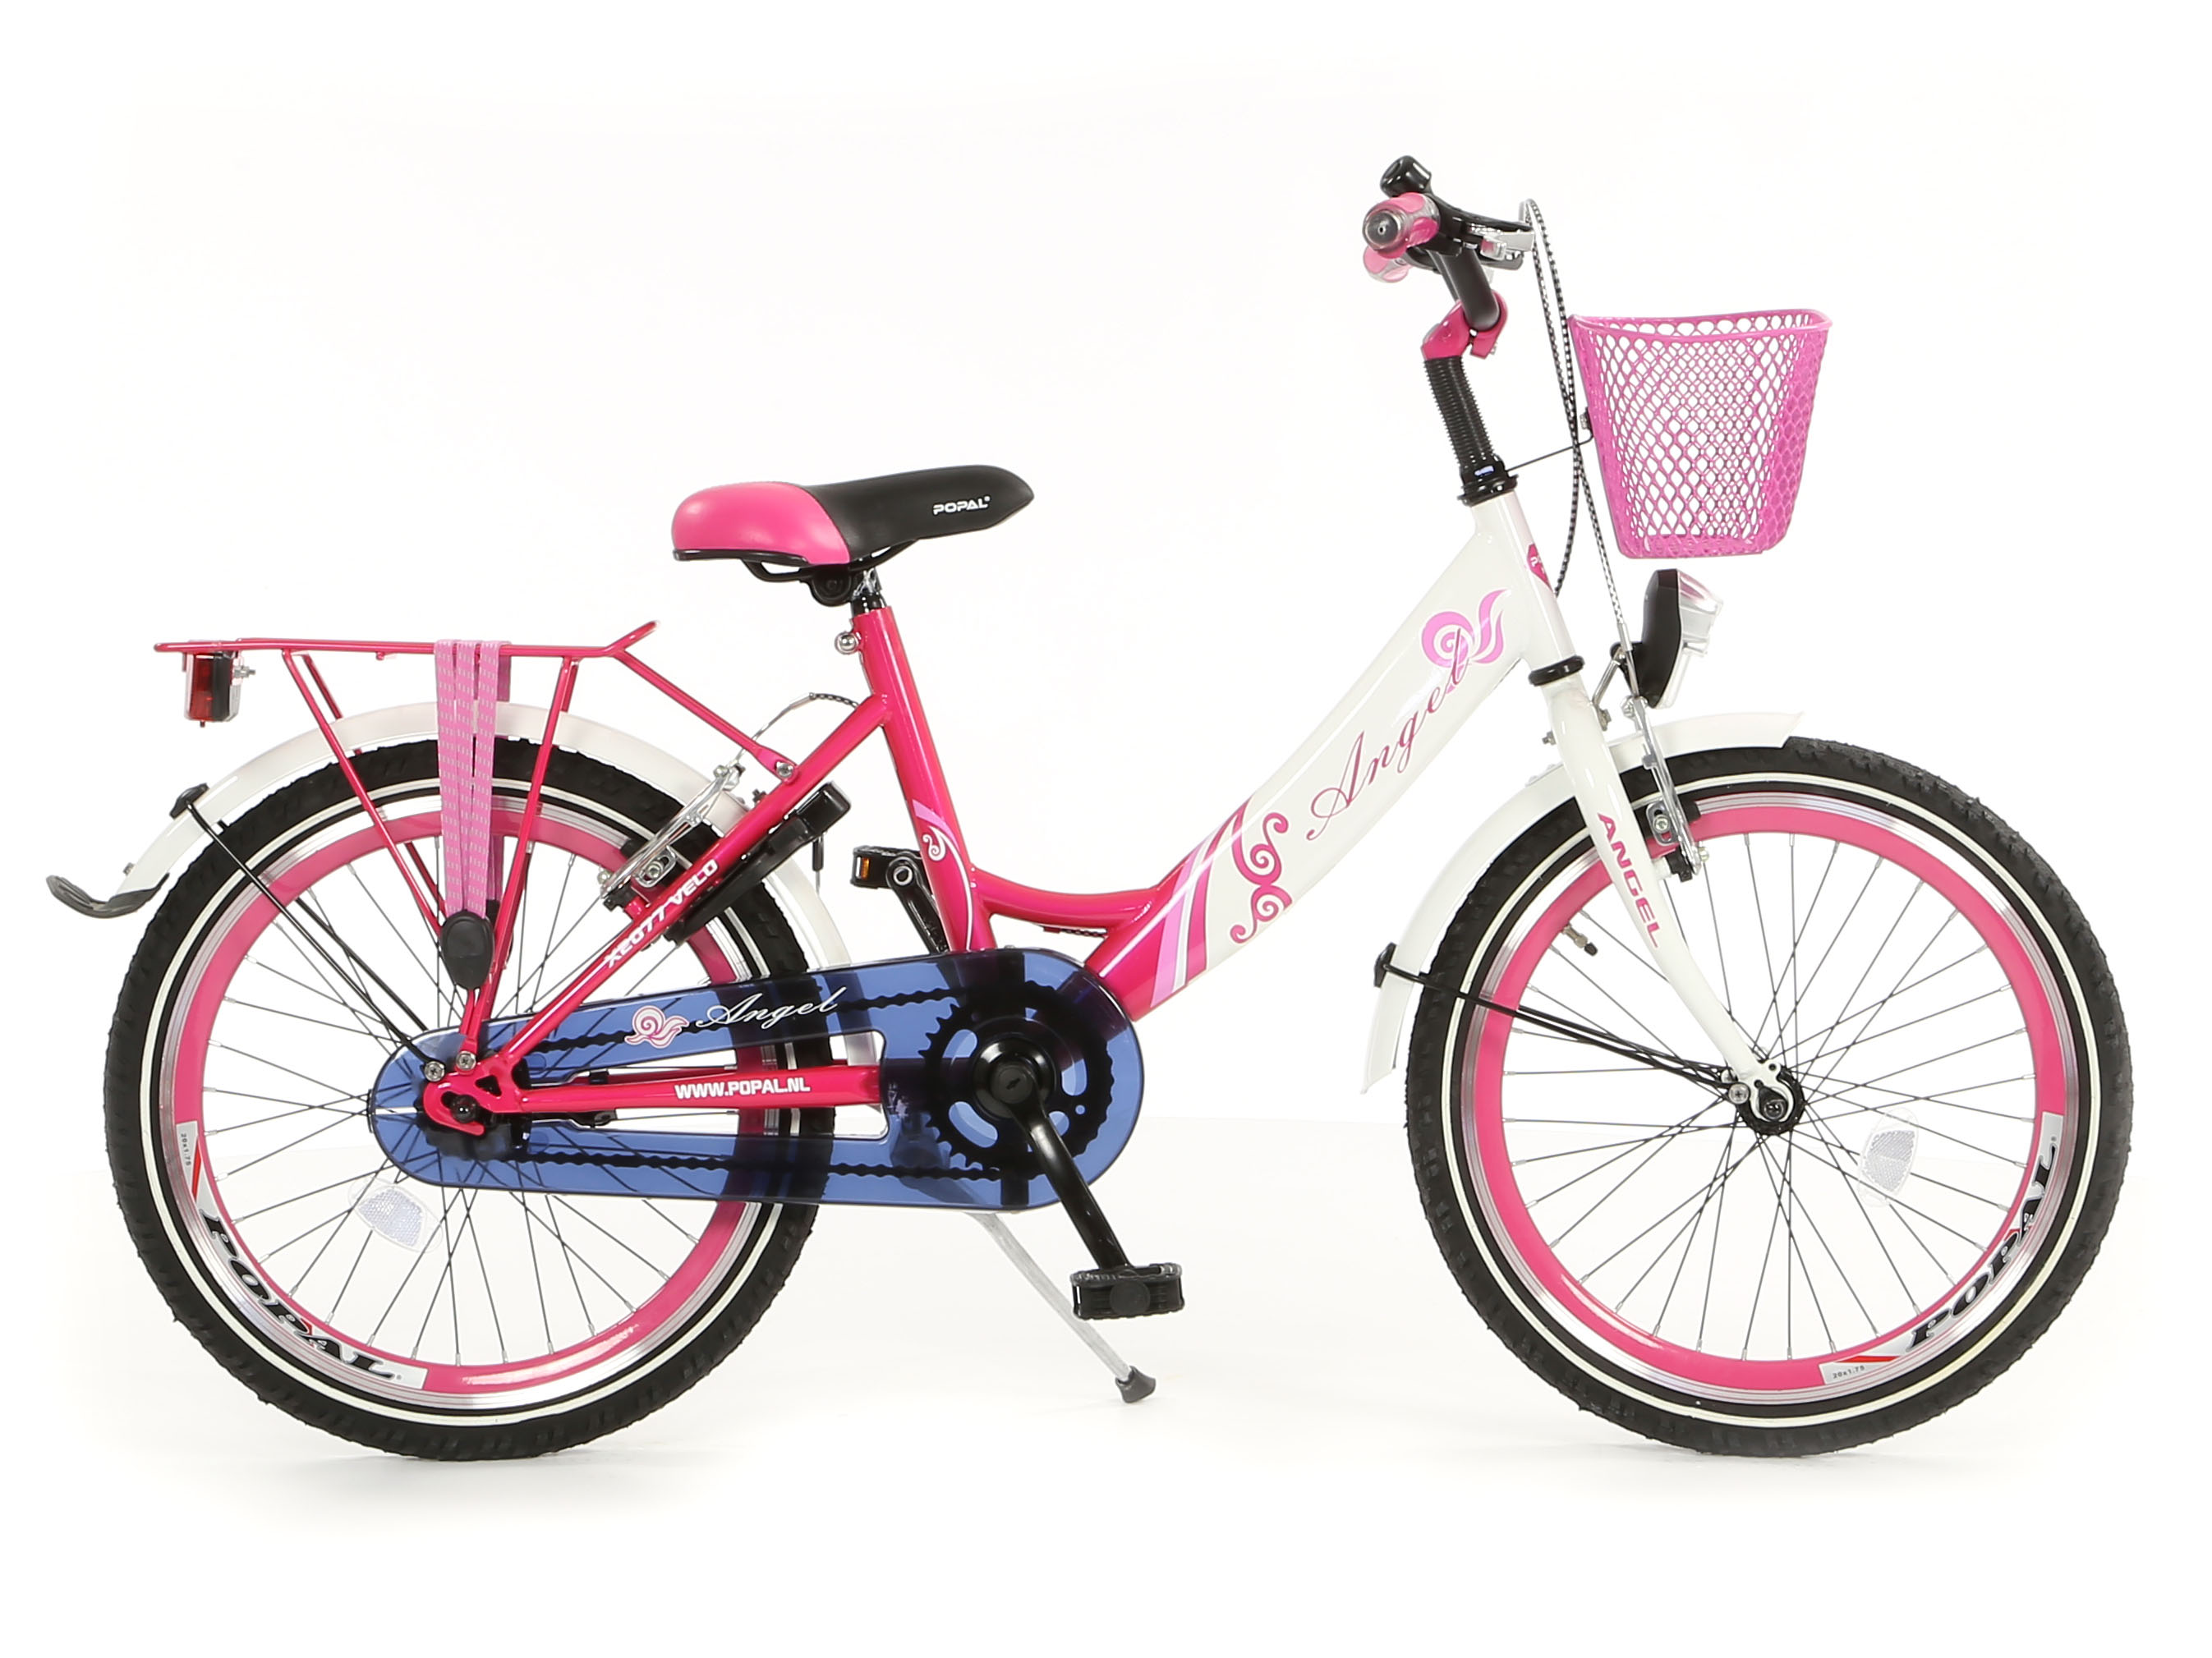 http://portal.theshopfactory.nl/images/image/Popal%20Angel%20roze%2022%20inch.jpg